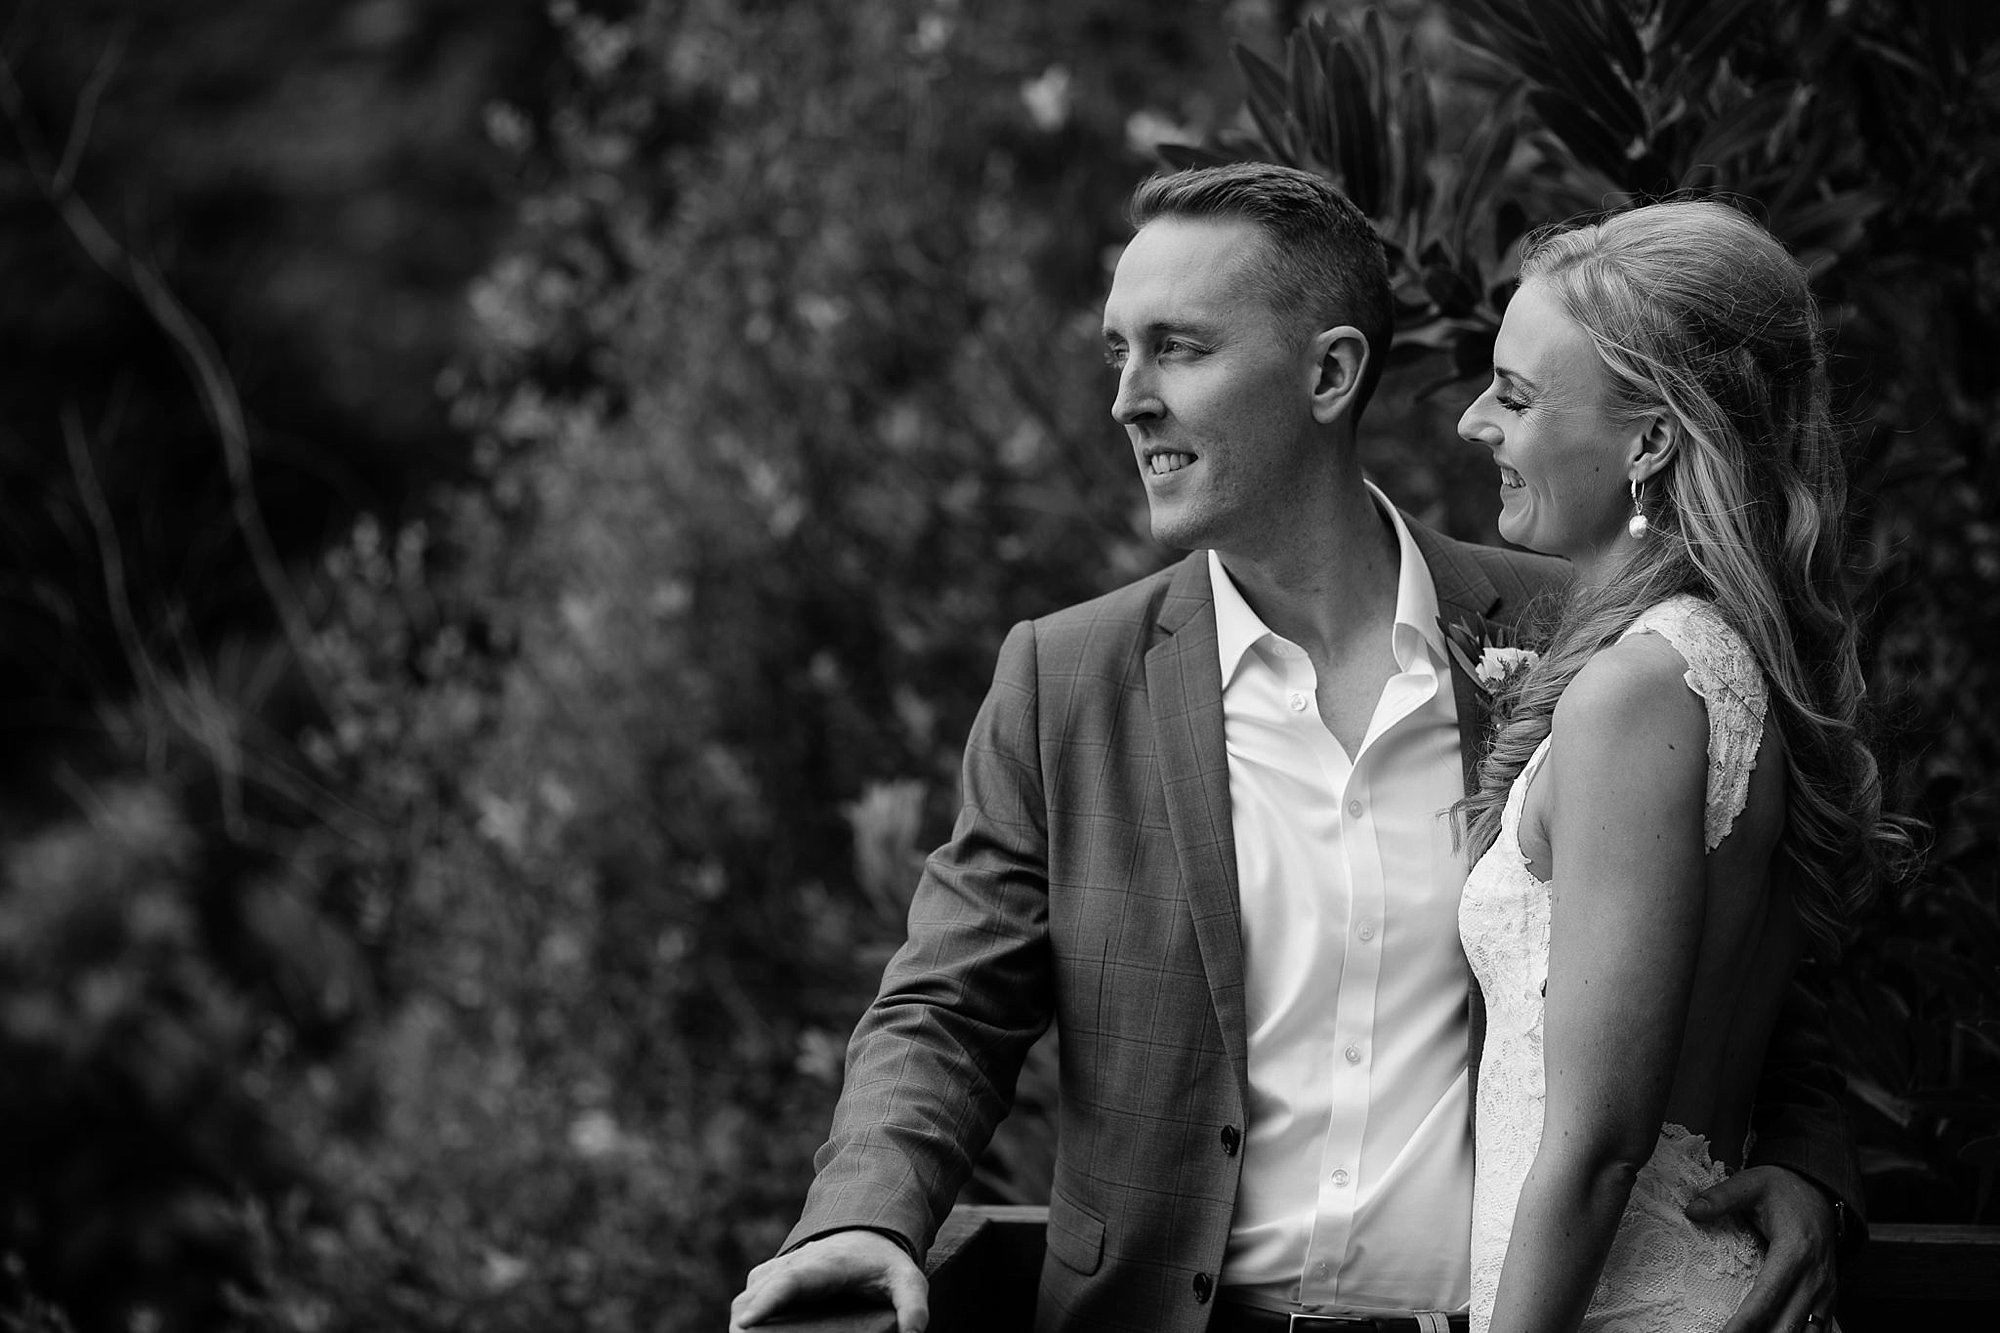 Canberra Photography,Keepsakephoto by the Keeffes,Merimbula Wedding Photographer,South Coast Wedding,destination wedding,Canberra Wedding Photographer,Canberra Wedding Photography,Summer wedding,Beach wedding,folklore and co,honeymoon destination,malua bay wedding,